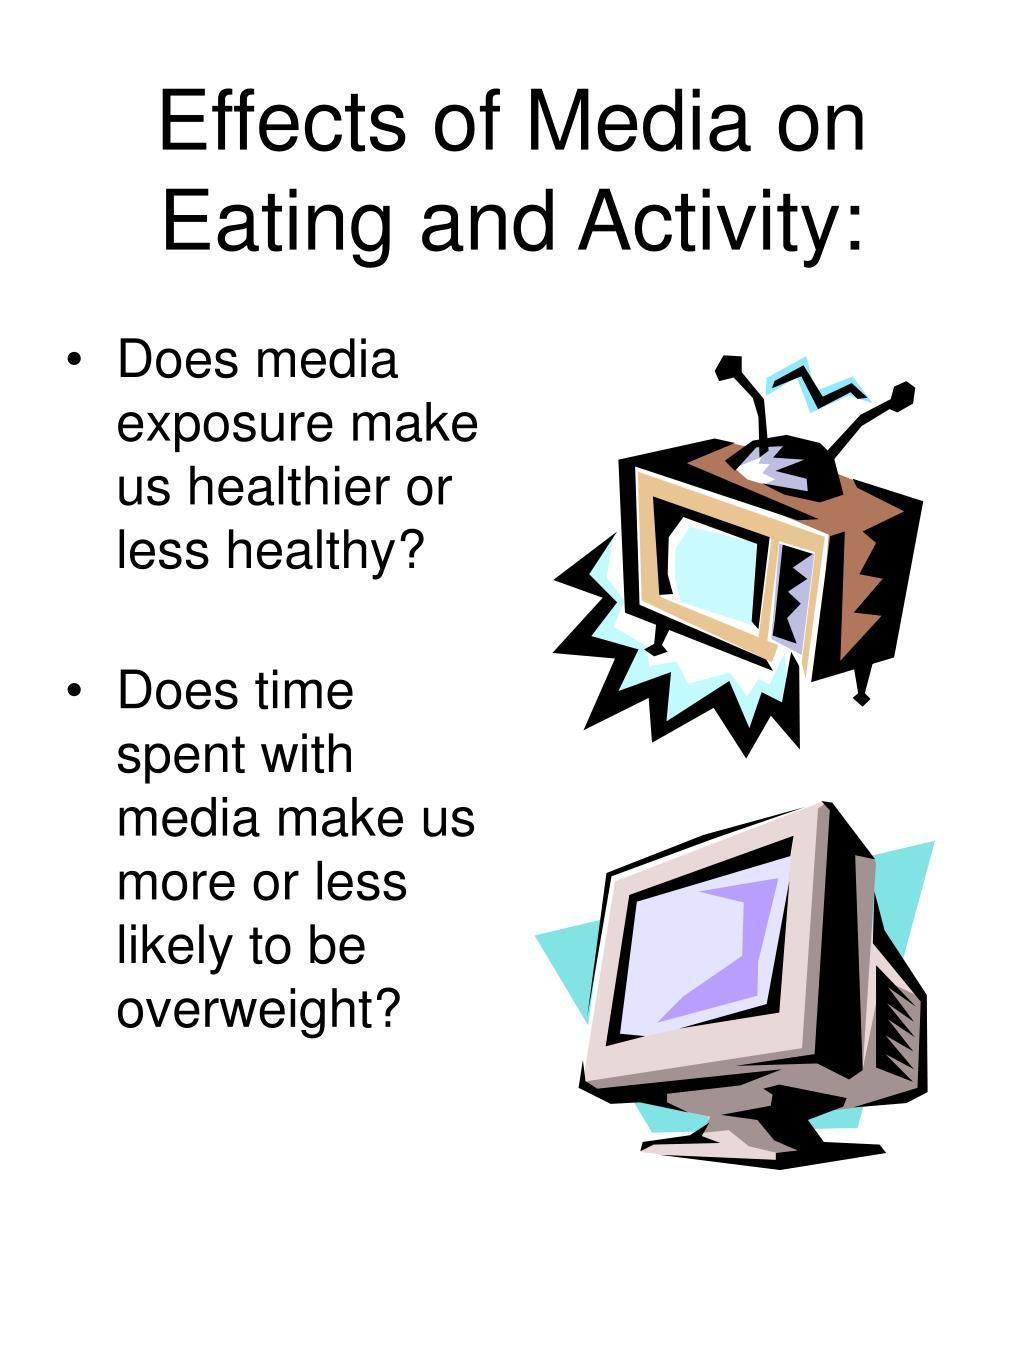 Effects of Media on Eating and Activity: